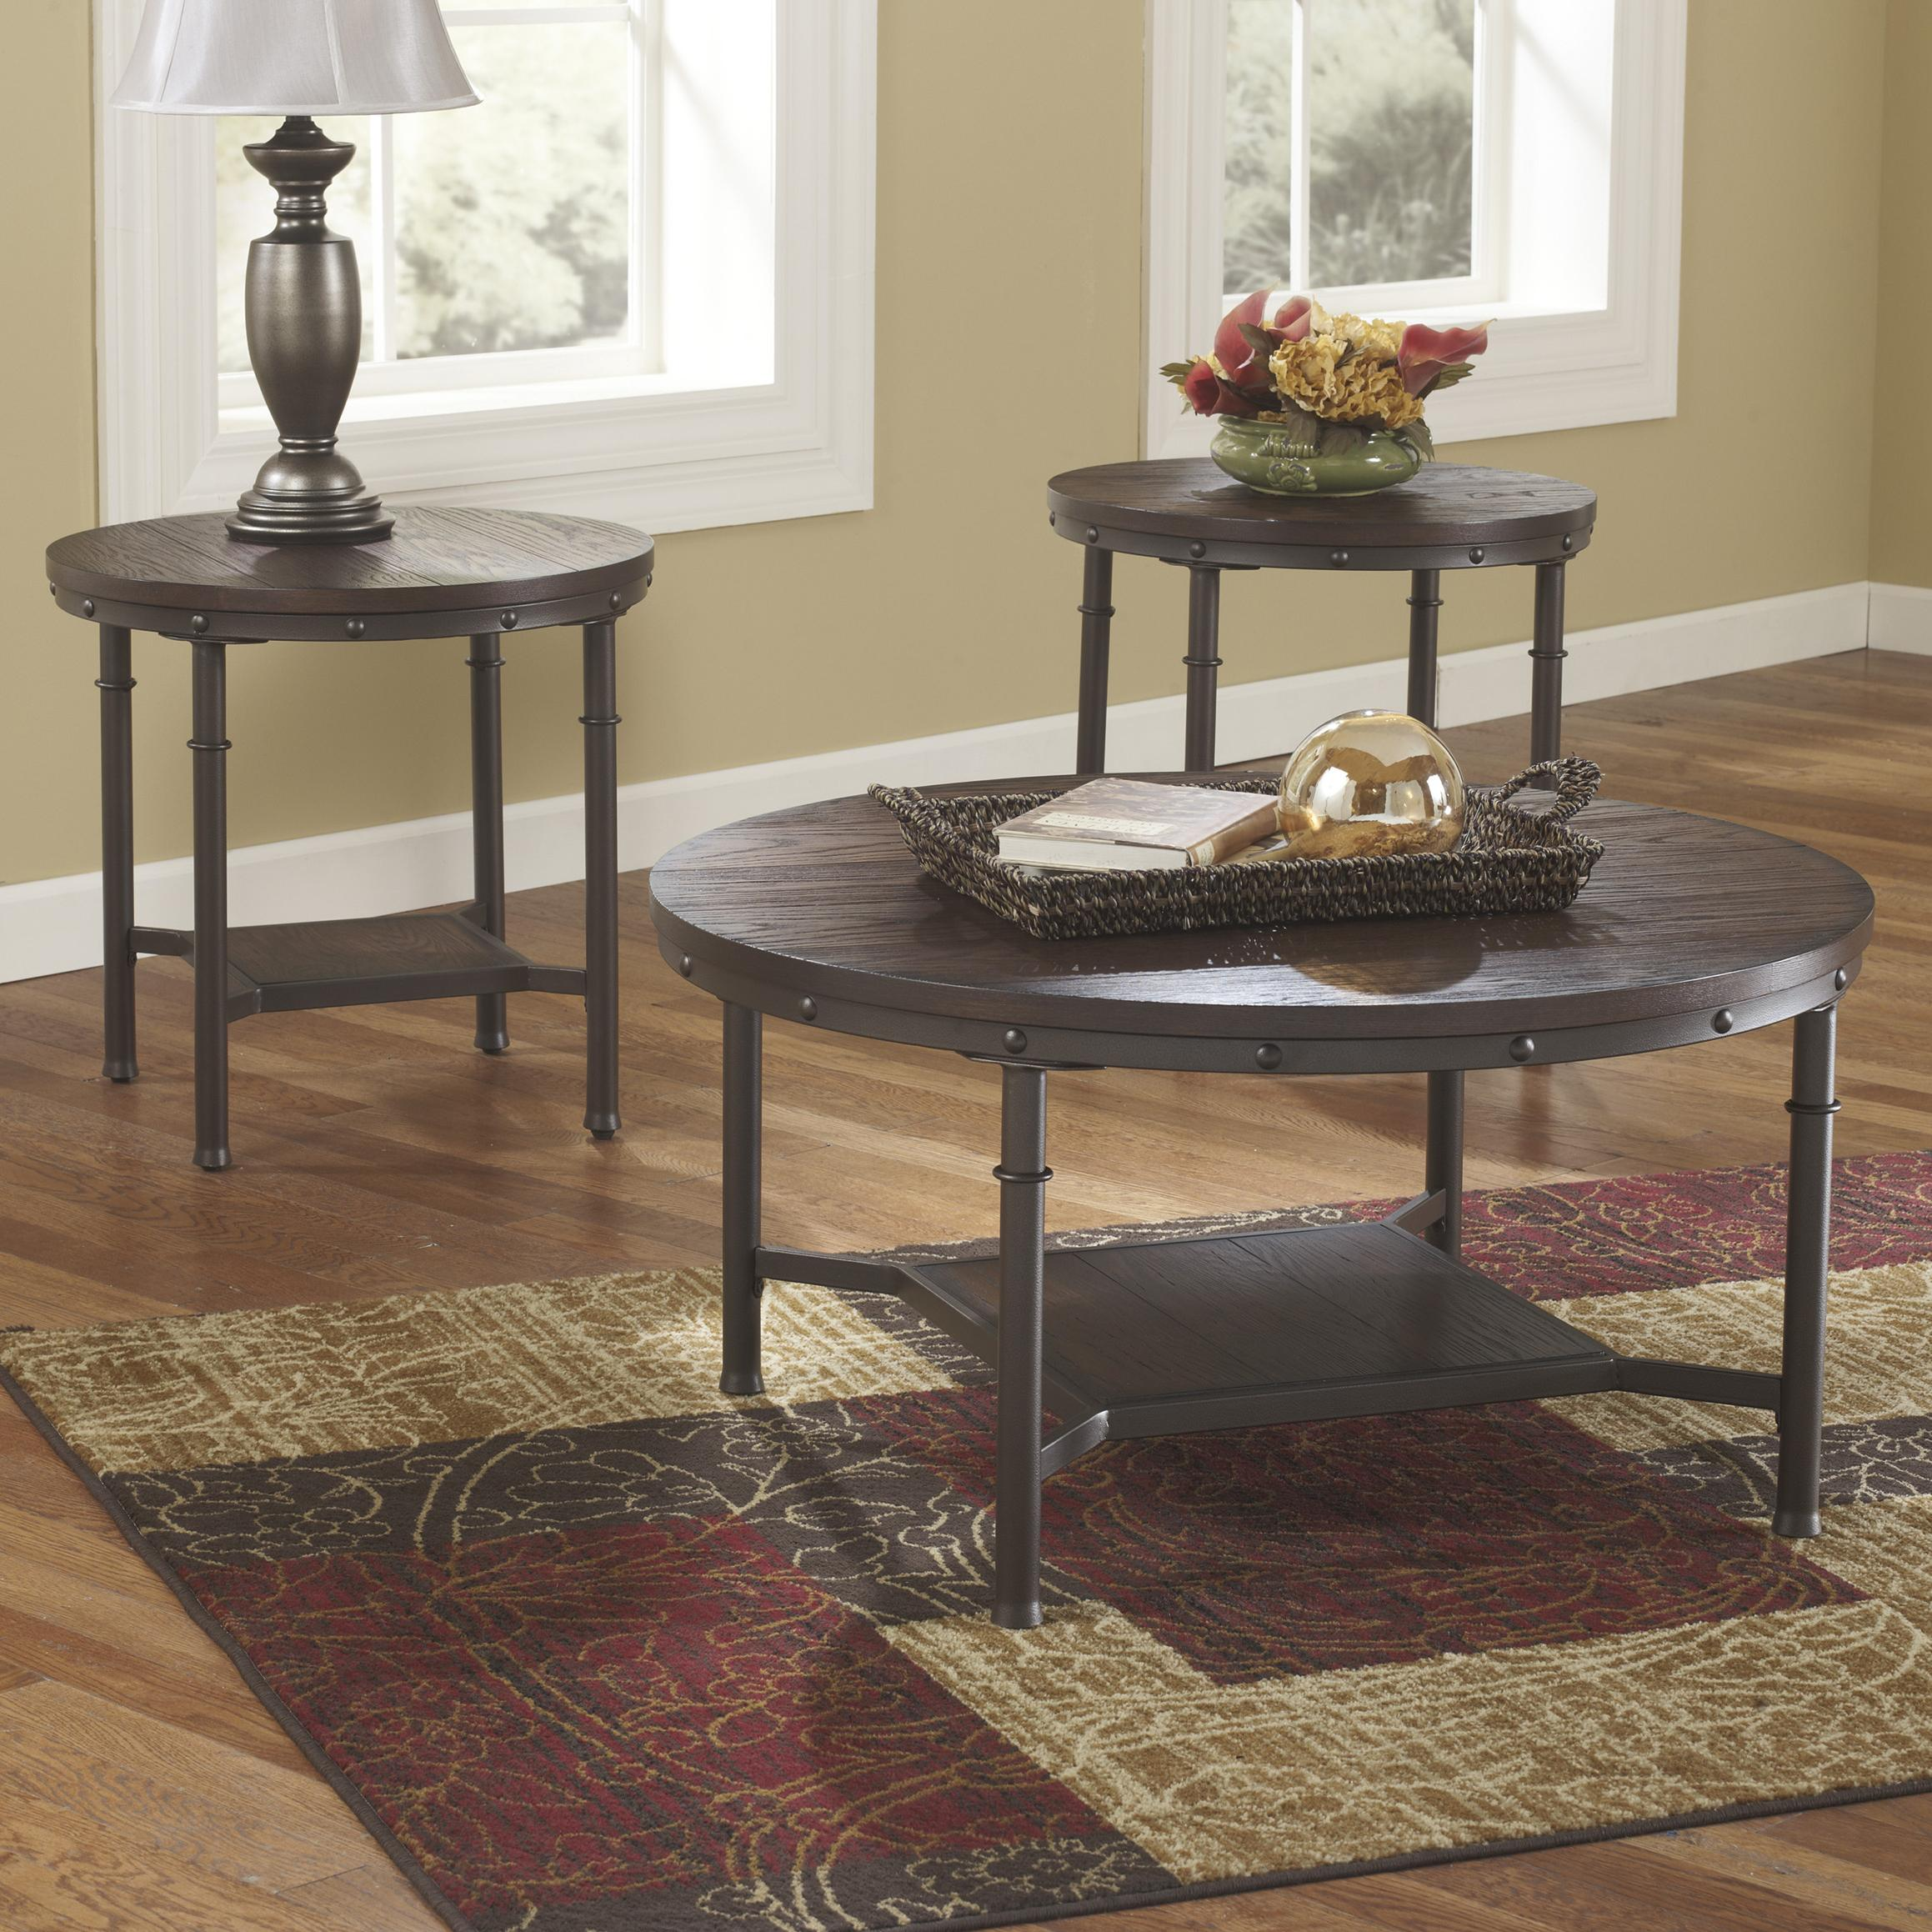 Signature Design by Ashley Sandling Occasional Table Set - Item Number: T277-13